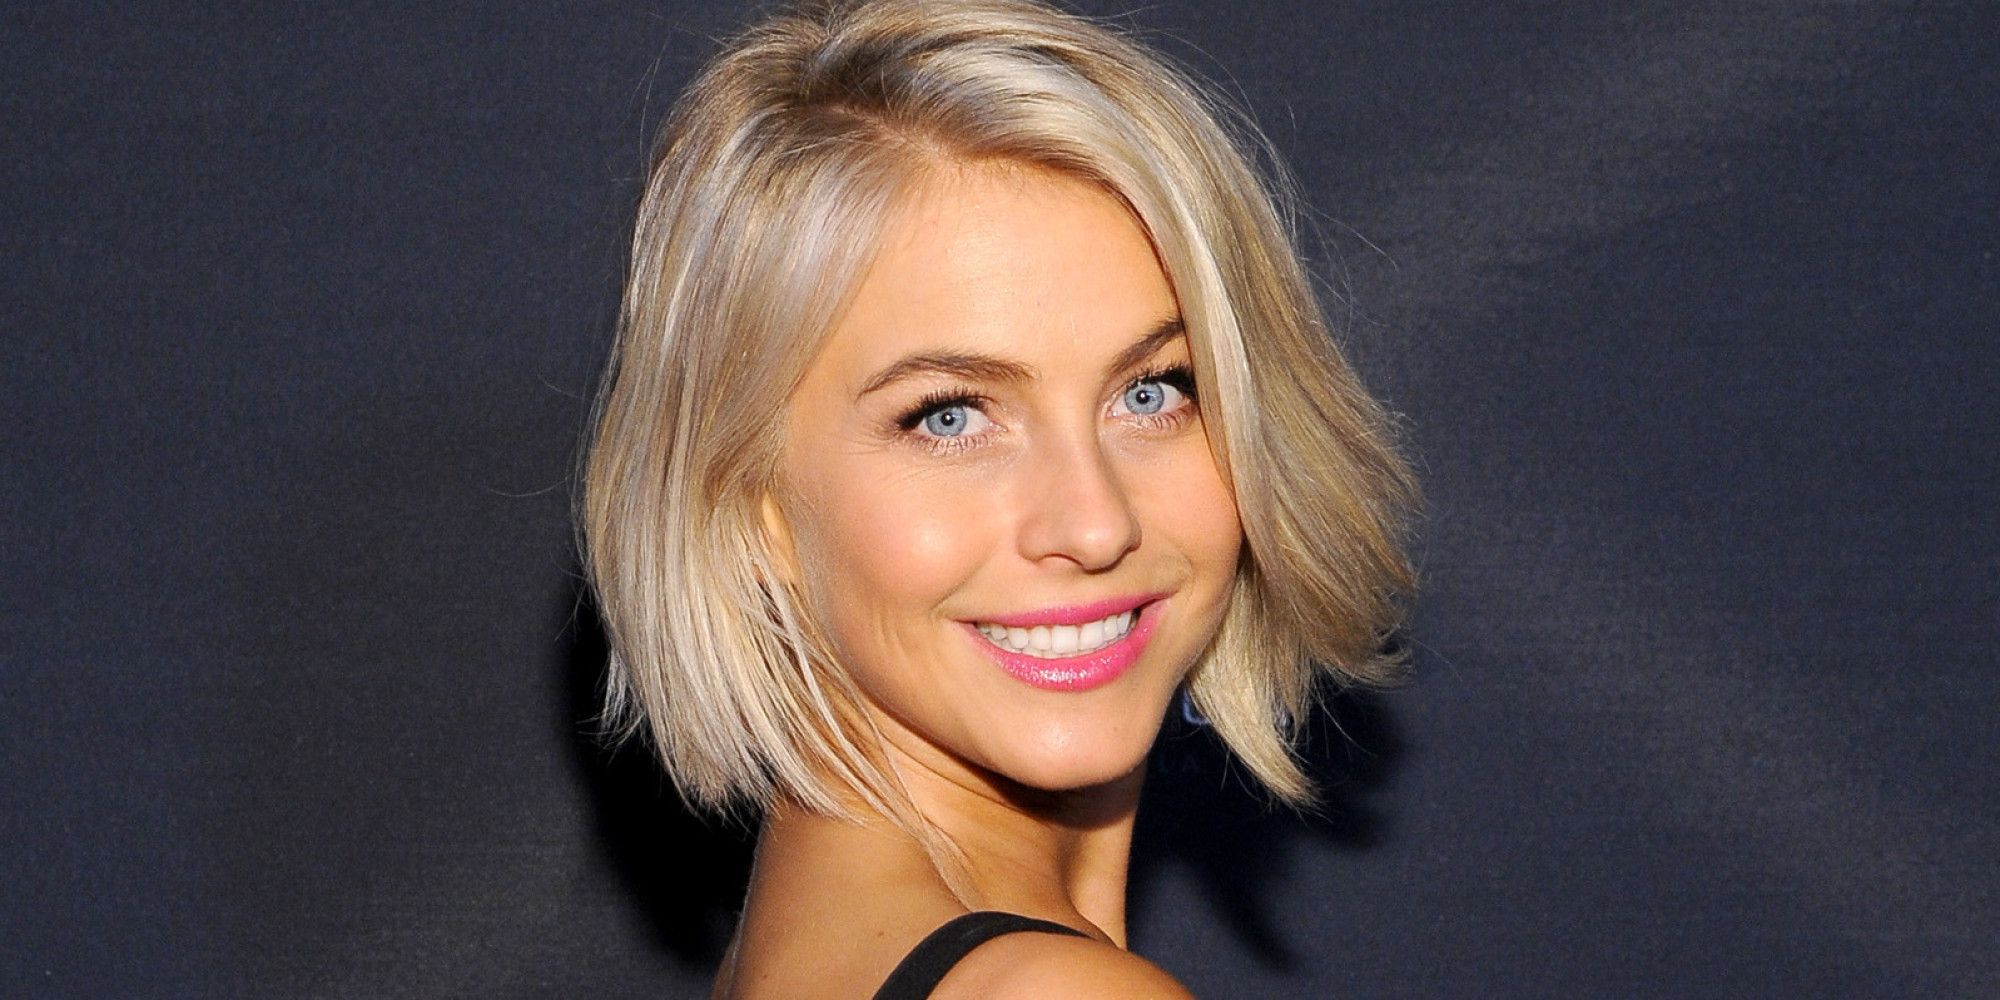 julianne hough on how to get voluminous curls like grease